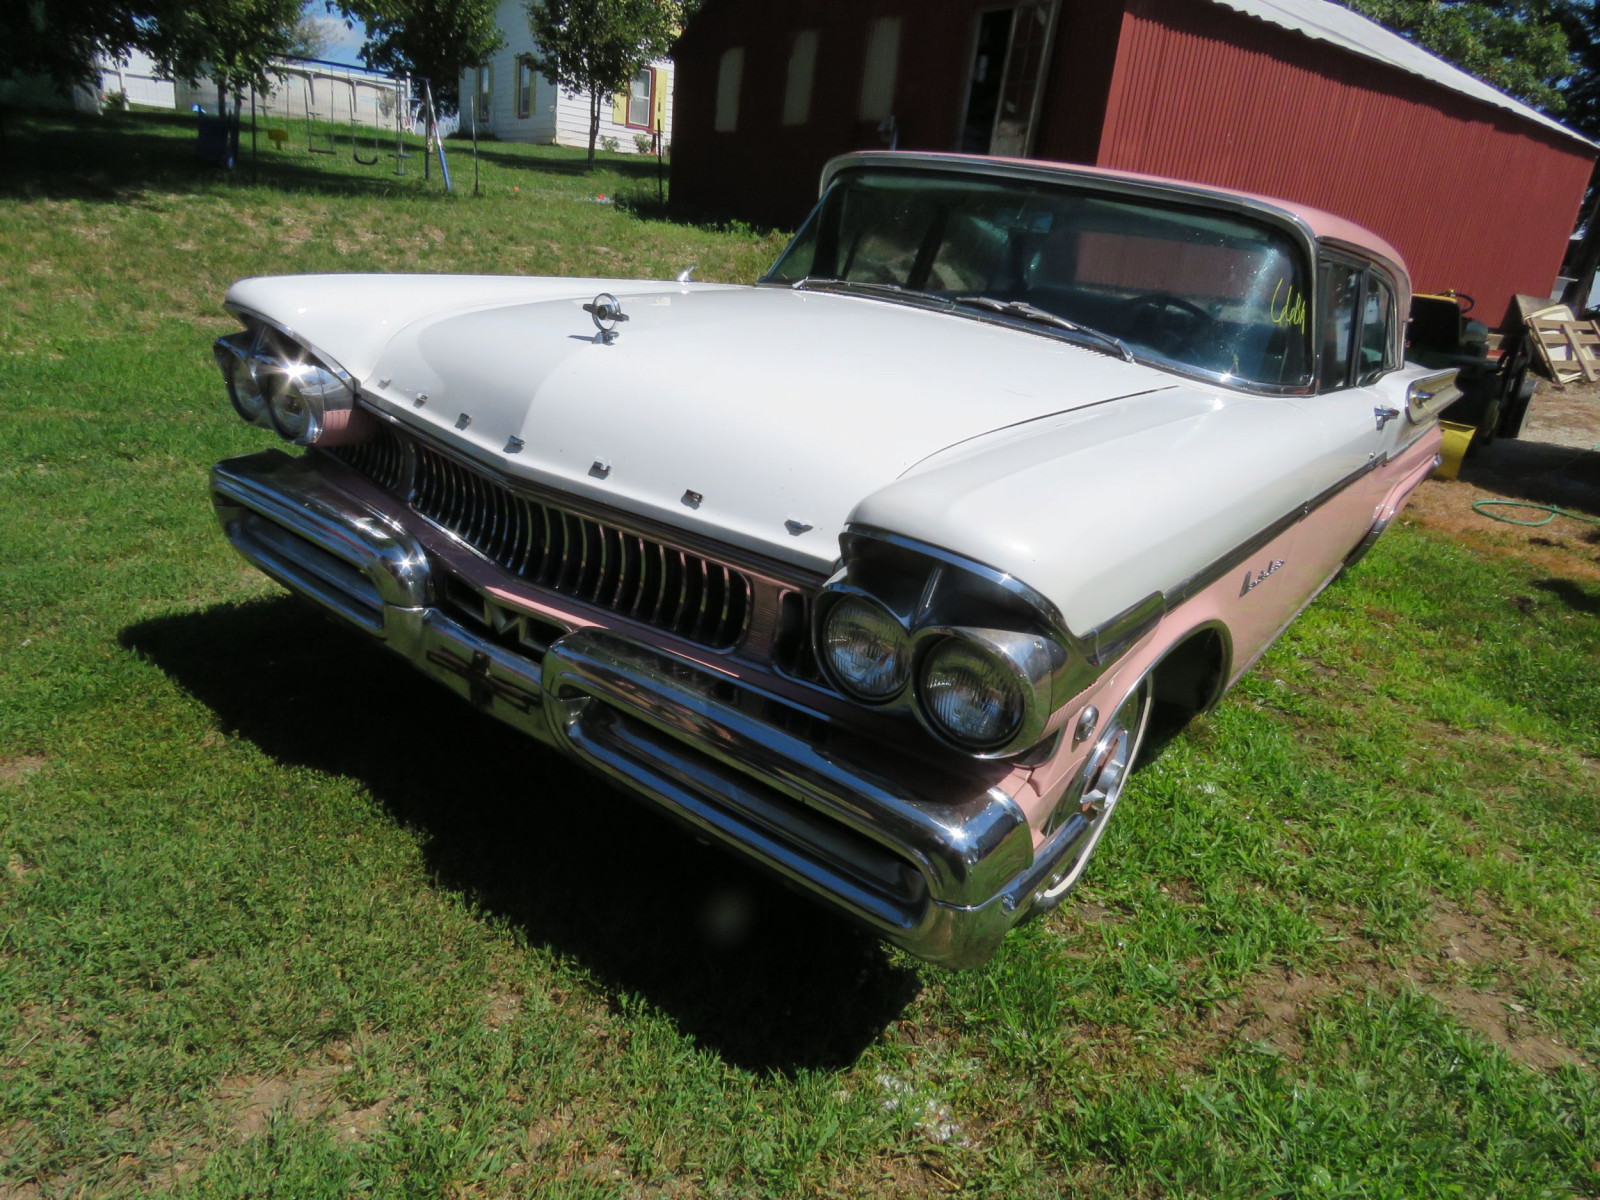 1957 Mercury Montclair 4dr Sedan - Image 3